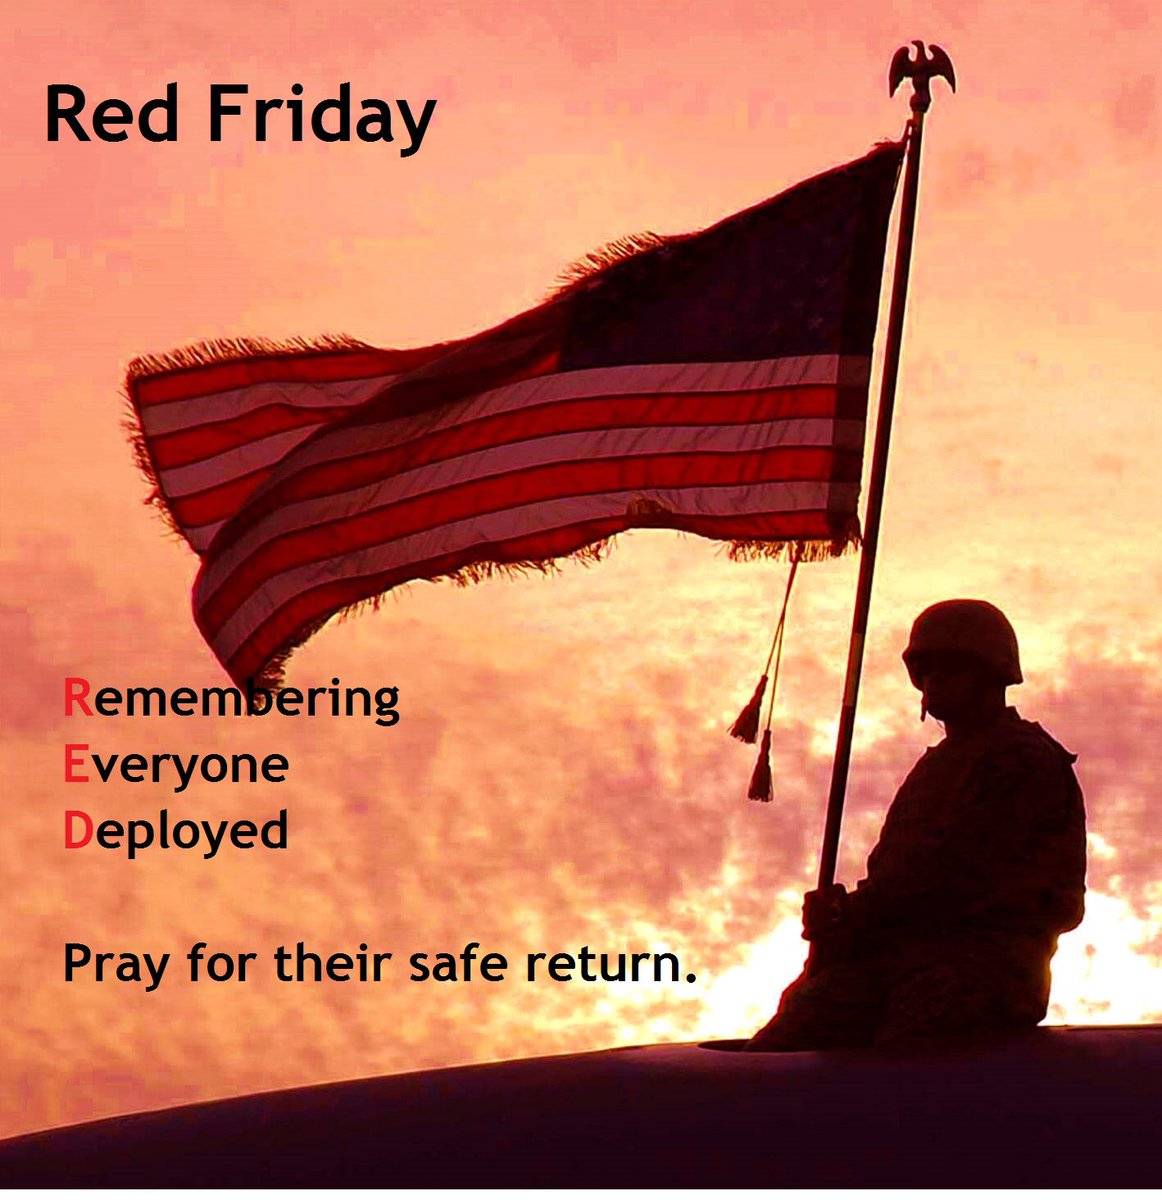 Until all they return home #REDFRIDAY #RememberEveryoneDeployed